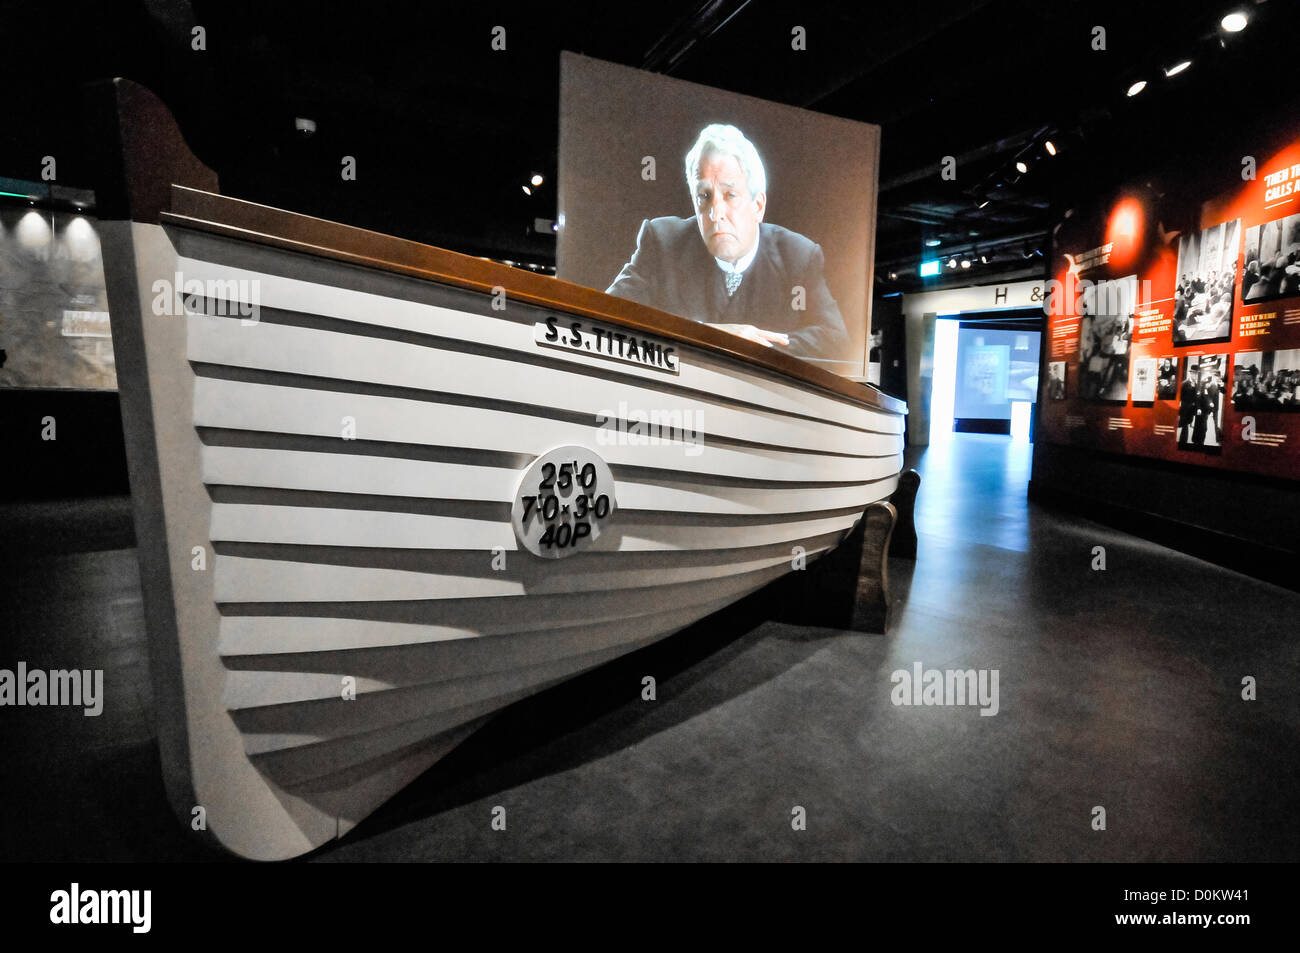 27th November 2012, Belfast. A new exhibition space opens in Titanic Belfast, including a replica lifeboat, and - Stock Image